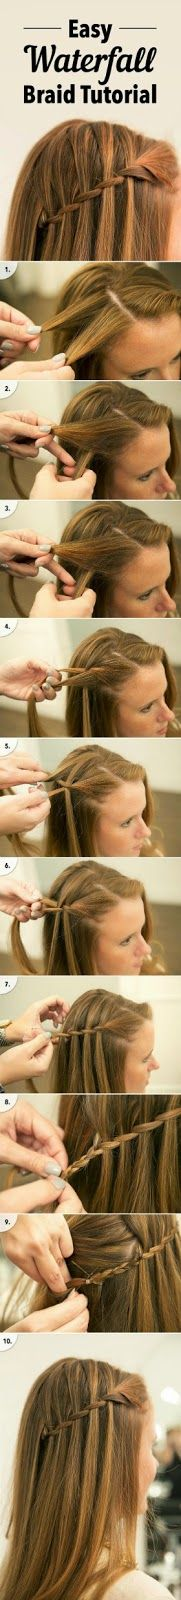 Easy Waterfall Braid Tutorial You Are Going to Want to Pin